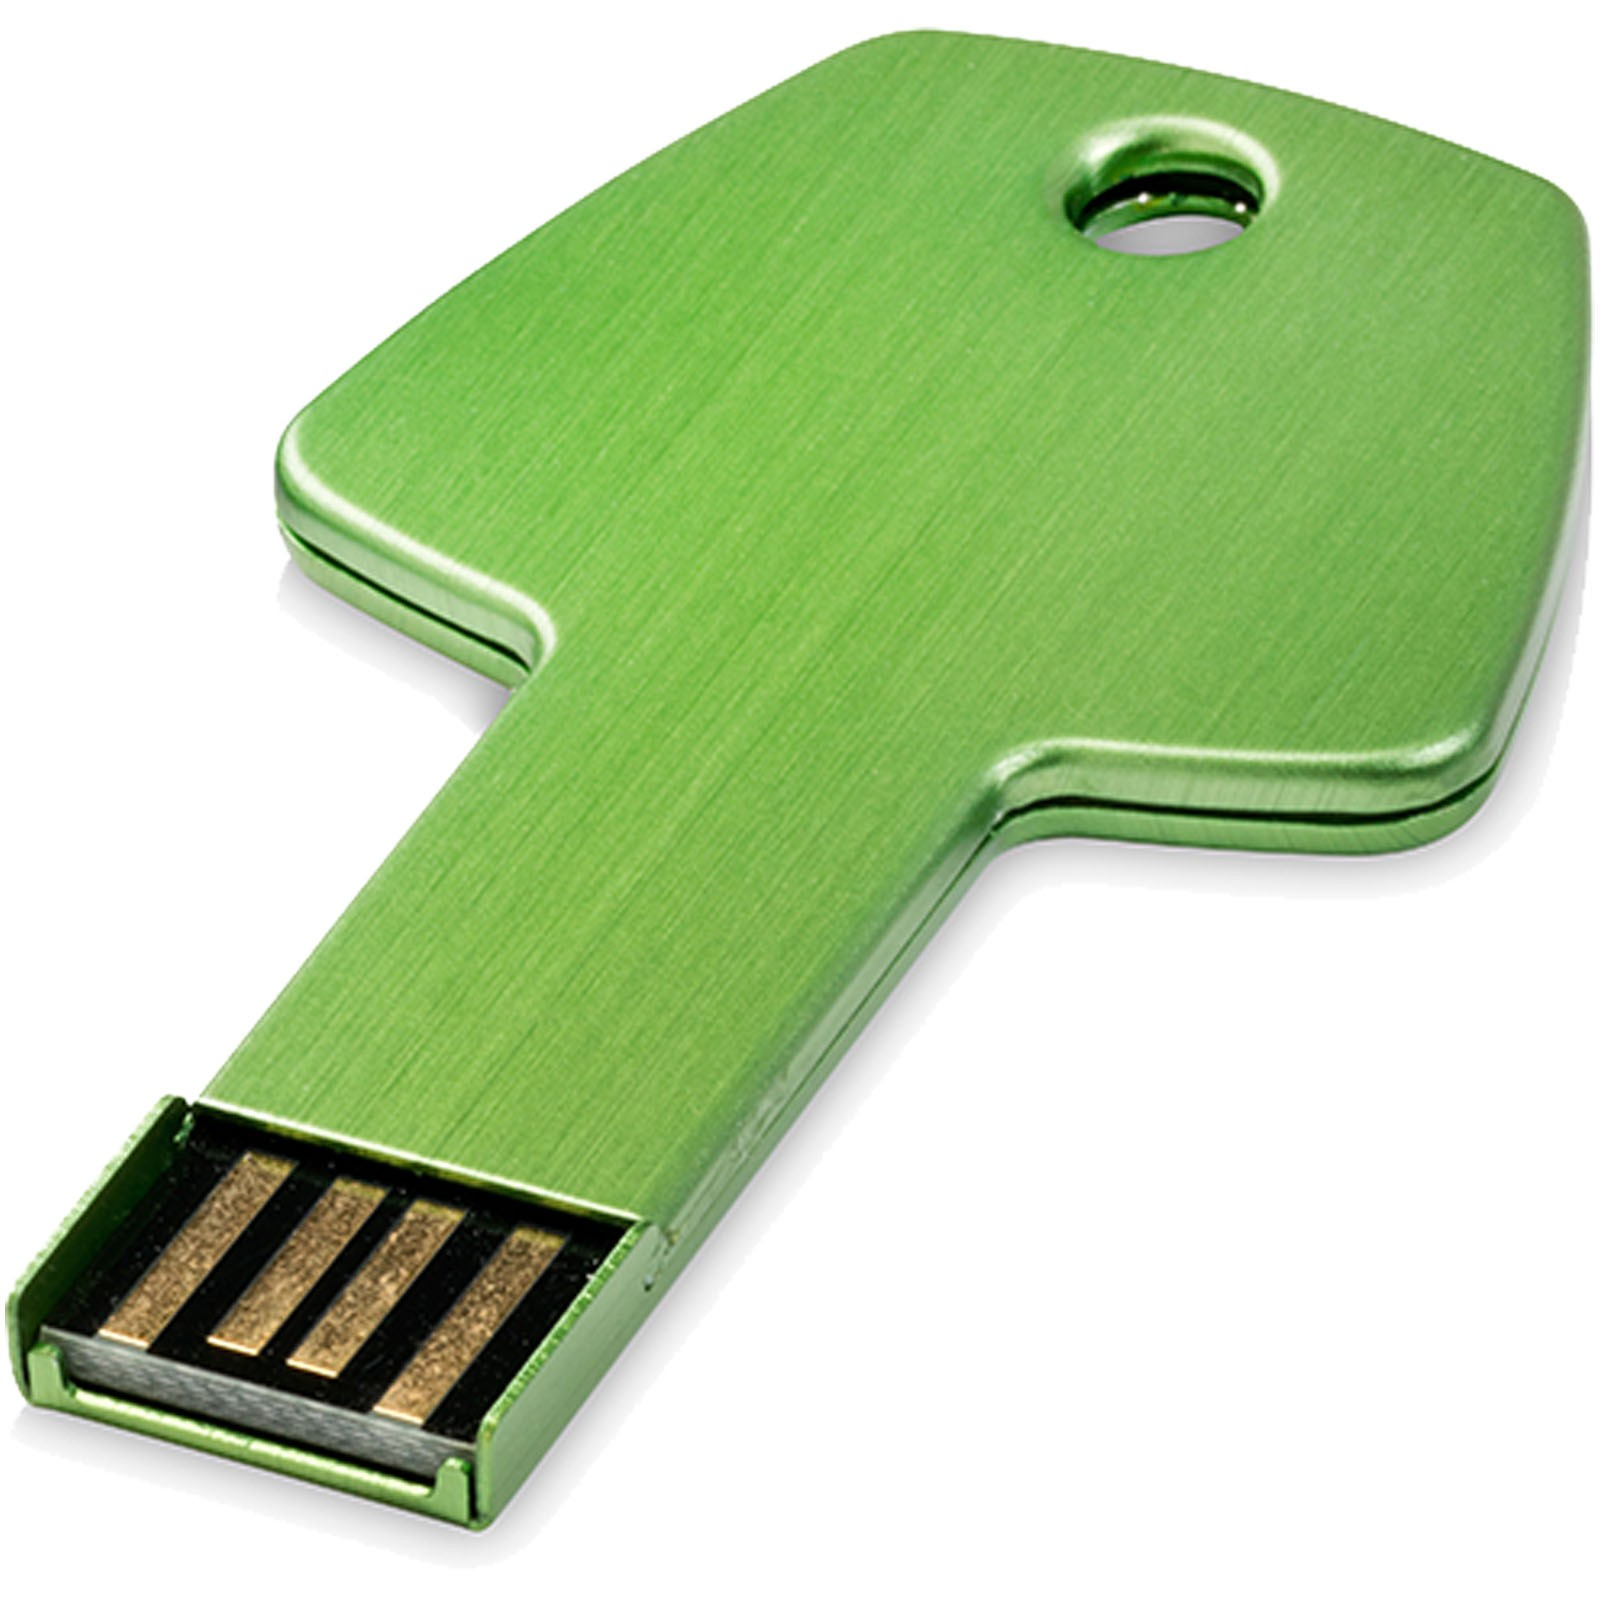 USB key - Green / 1GB